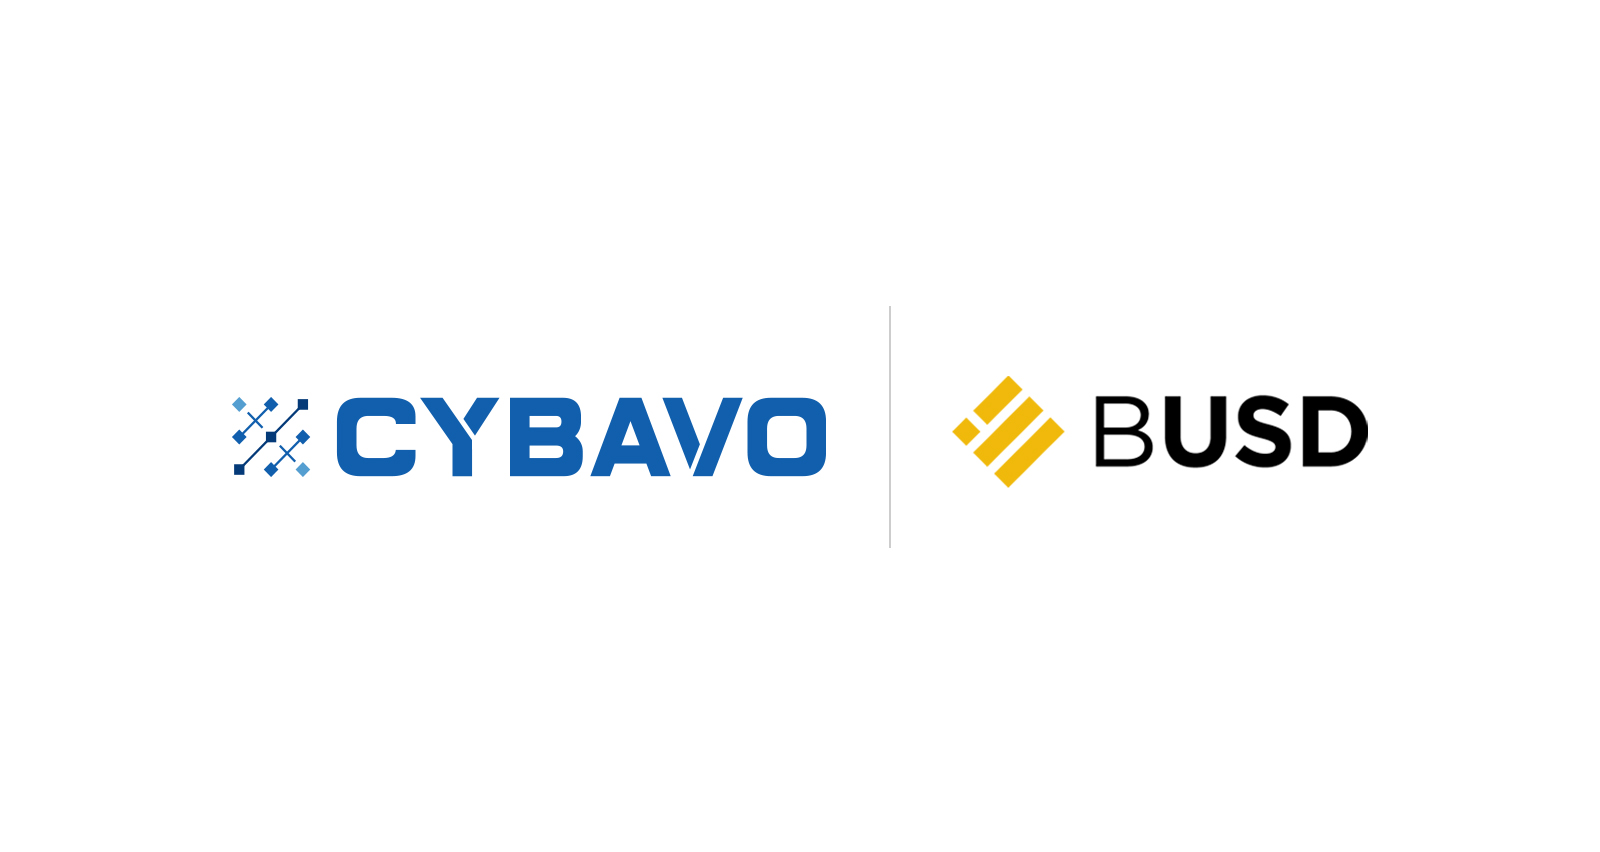 CYBAVO VAULT already supports BUSD stablecoin